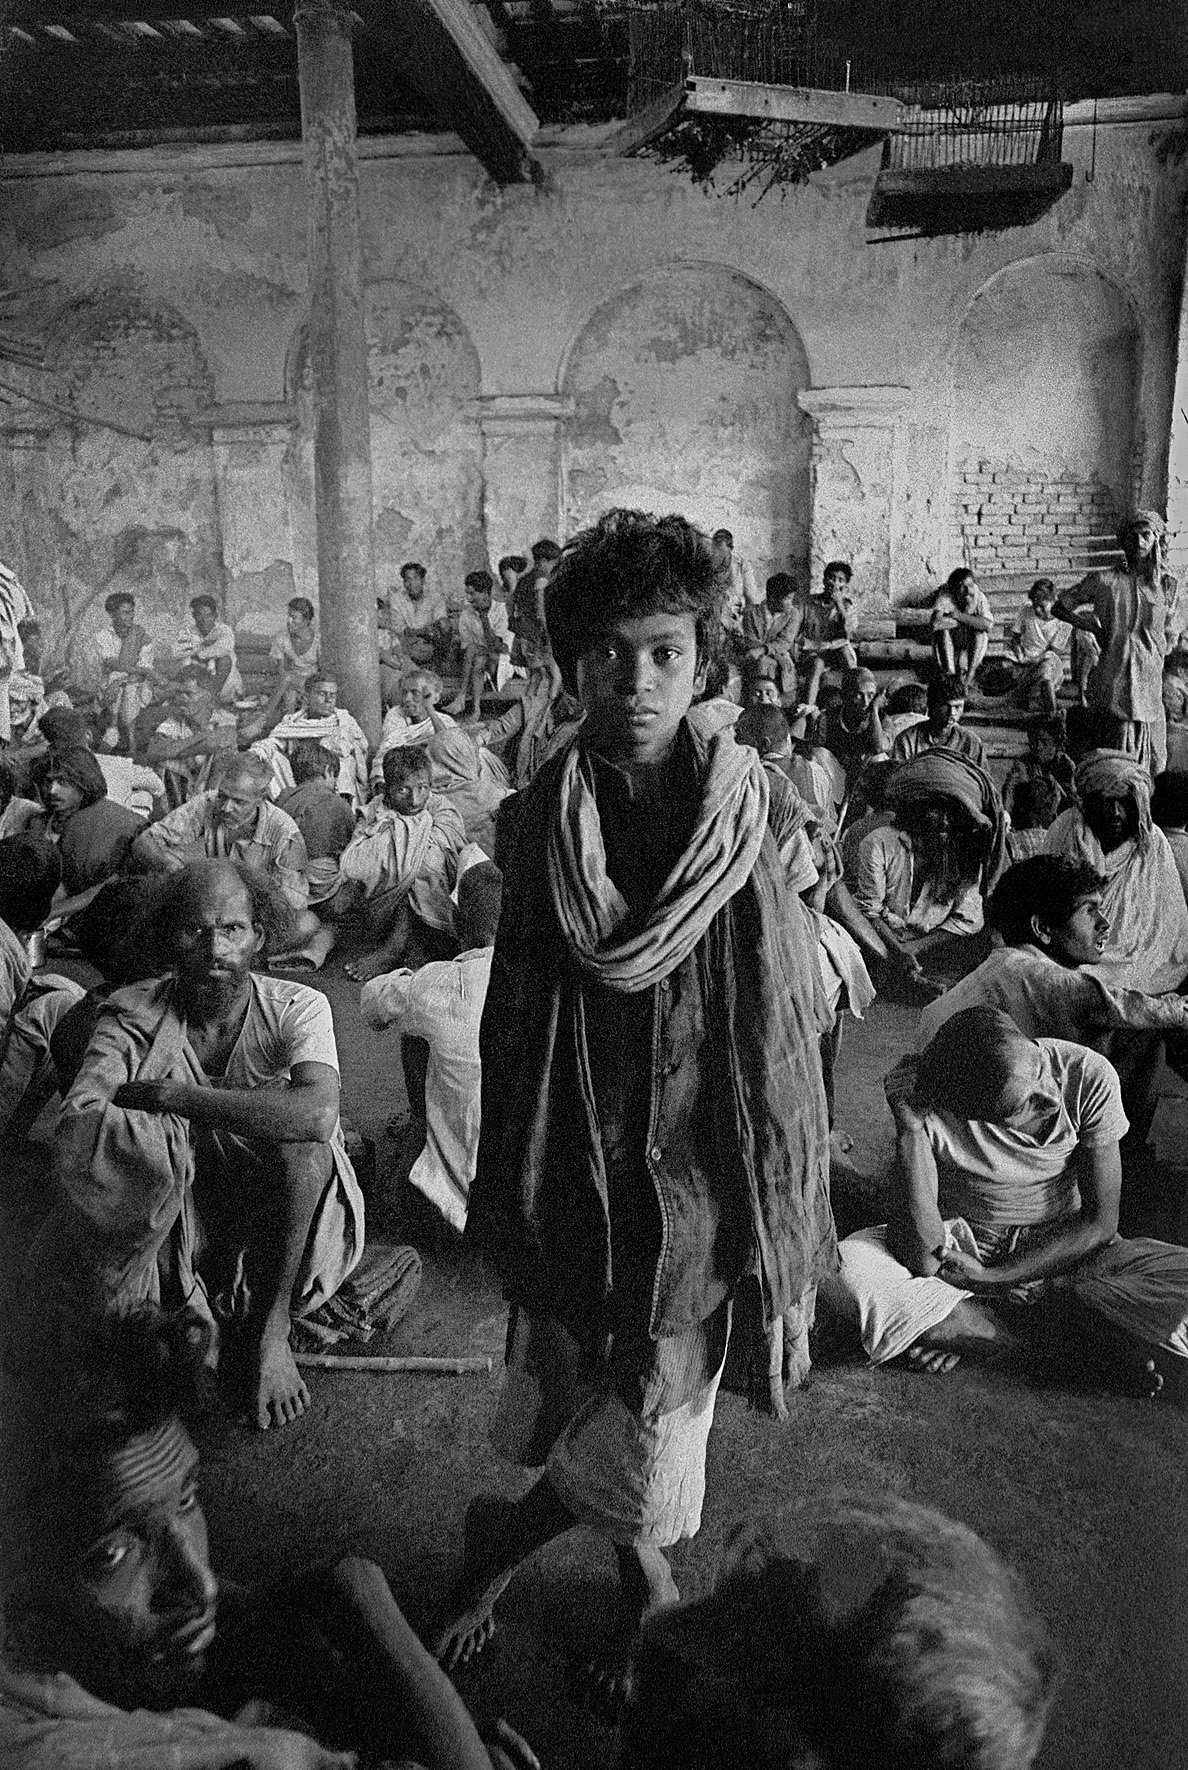 © Frank Horvat – Beggar assembly, India, 1962, Courtesy KLV Art Projects